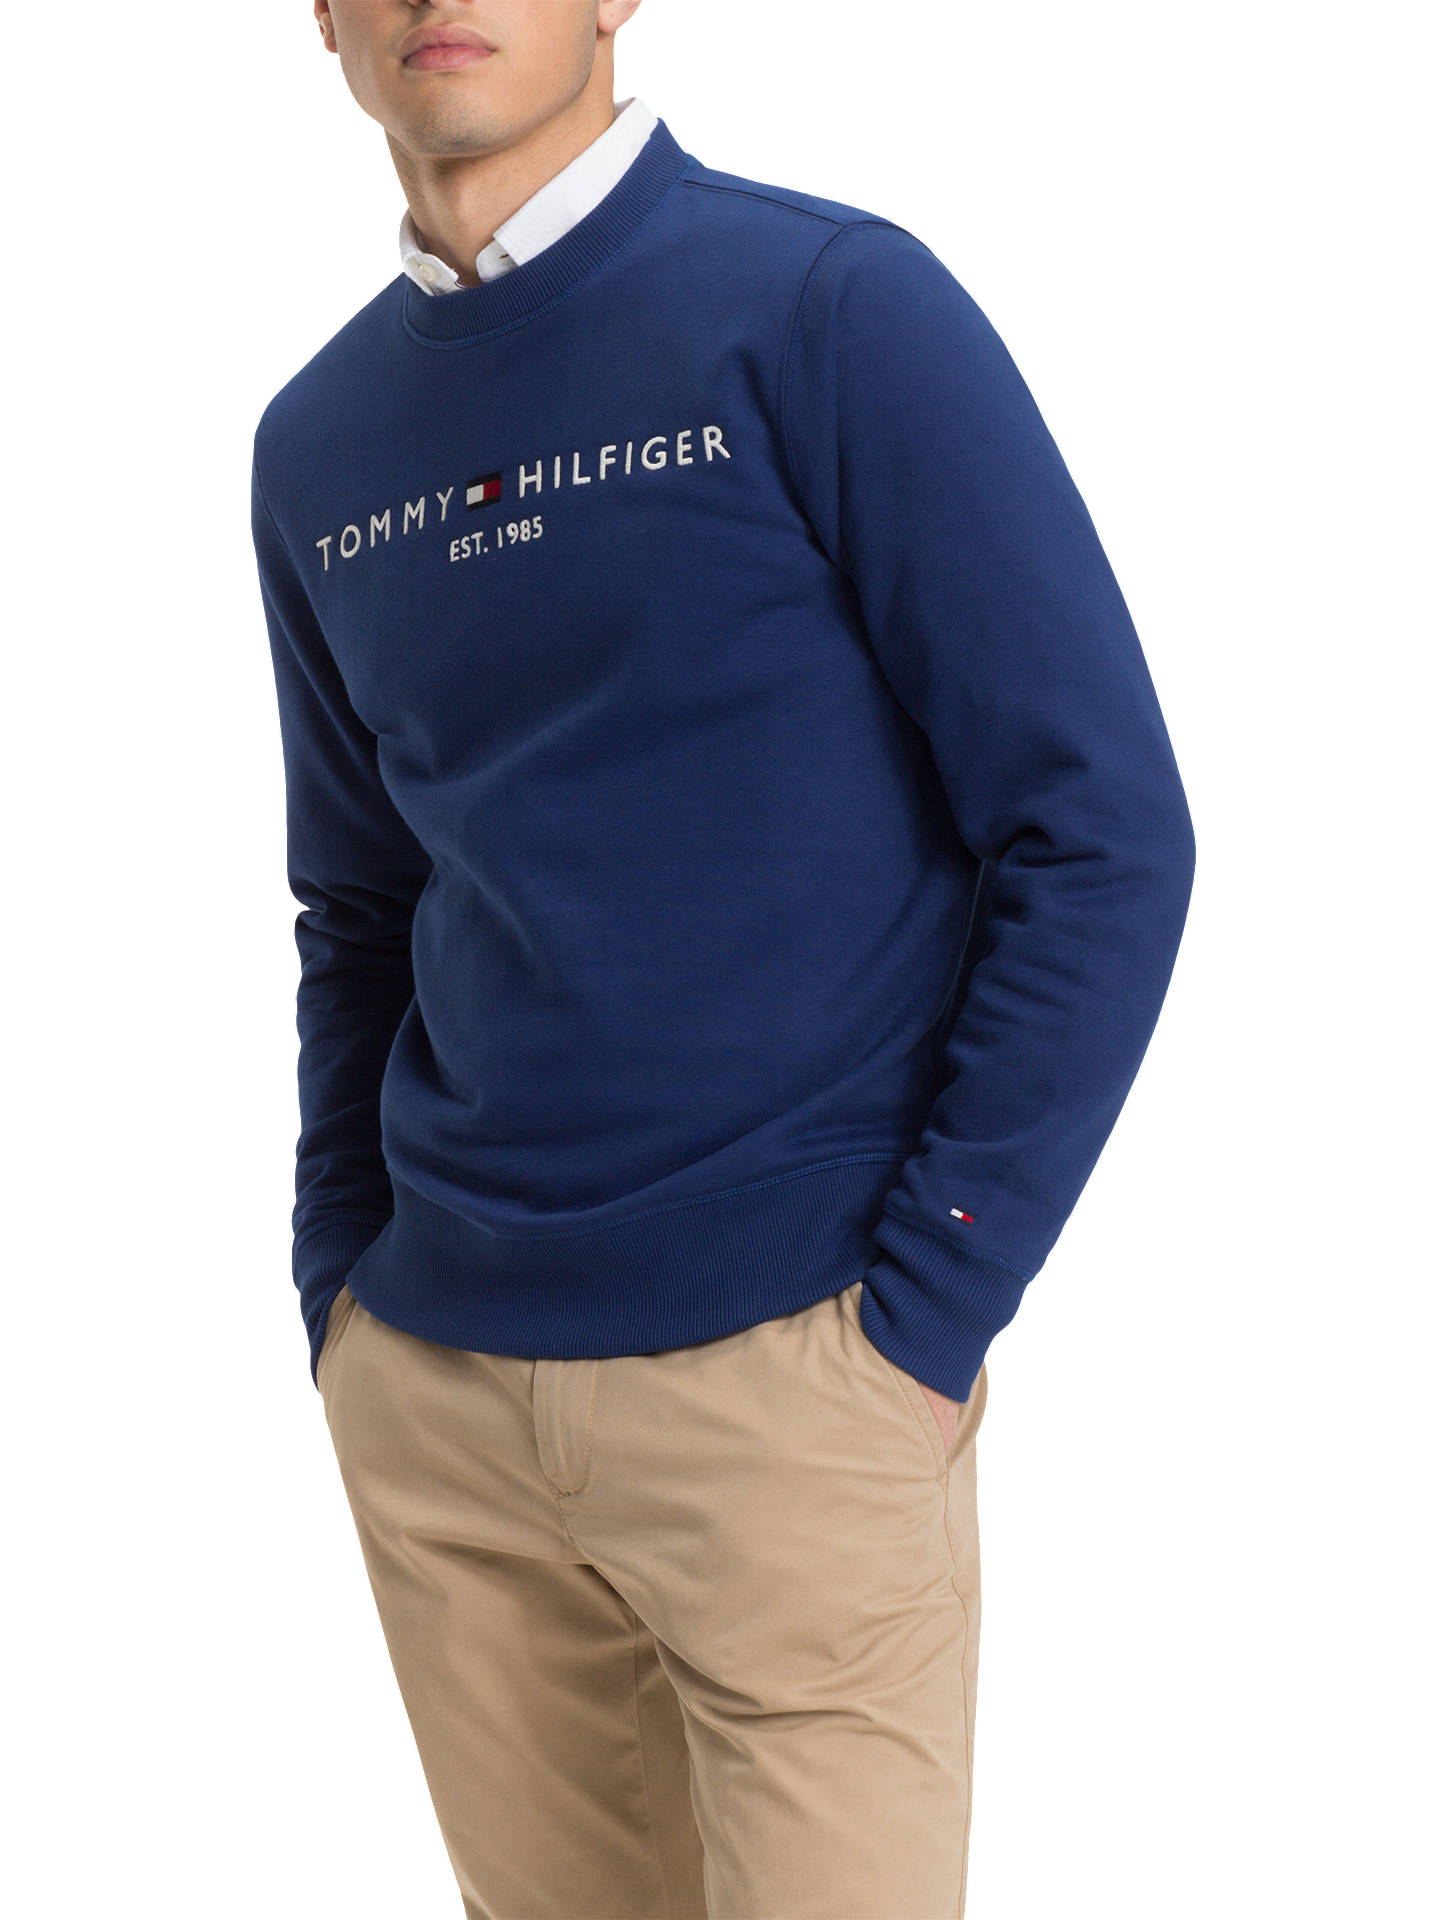 72afab24 Buy Tommy Hilfiger Long Sleeve Logo Sweatshirt, Blue, XL Online at  johnlewis.com ...